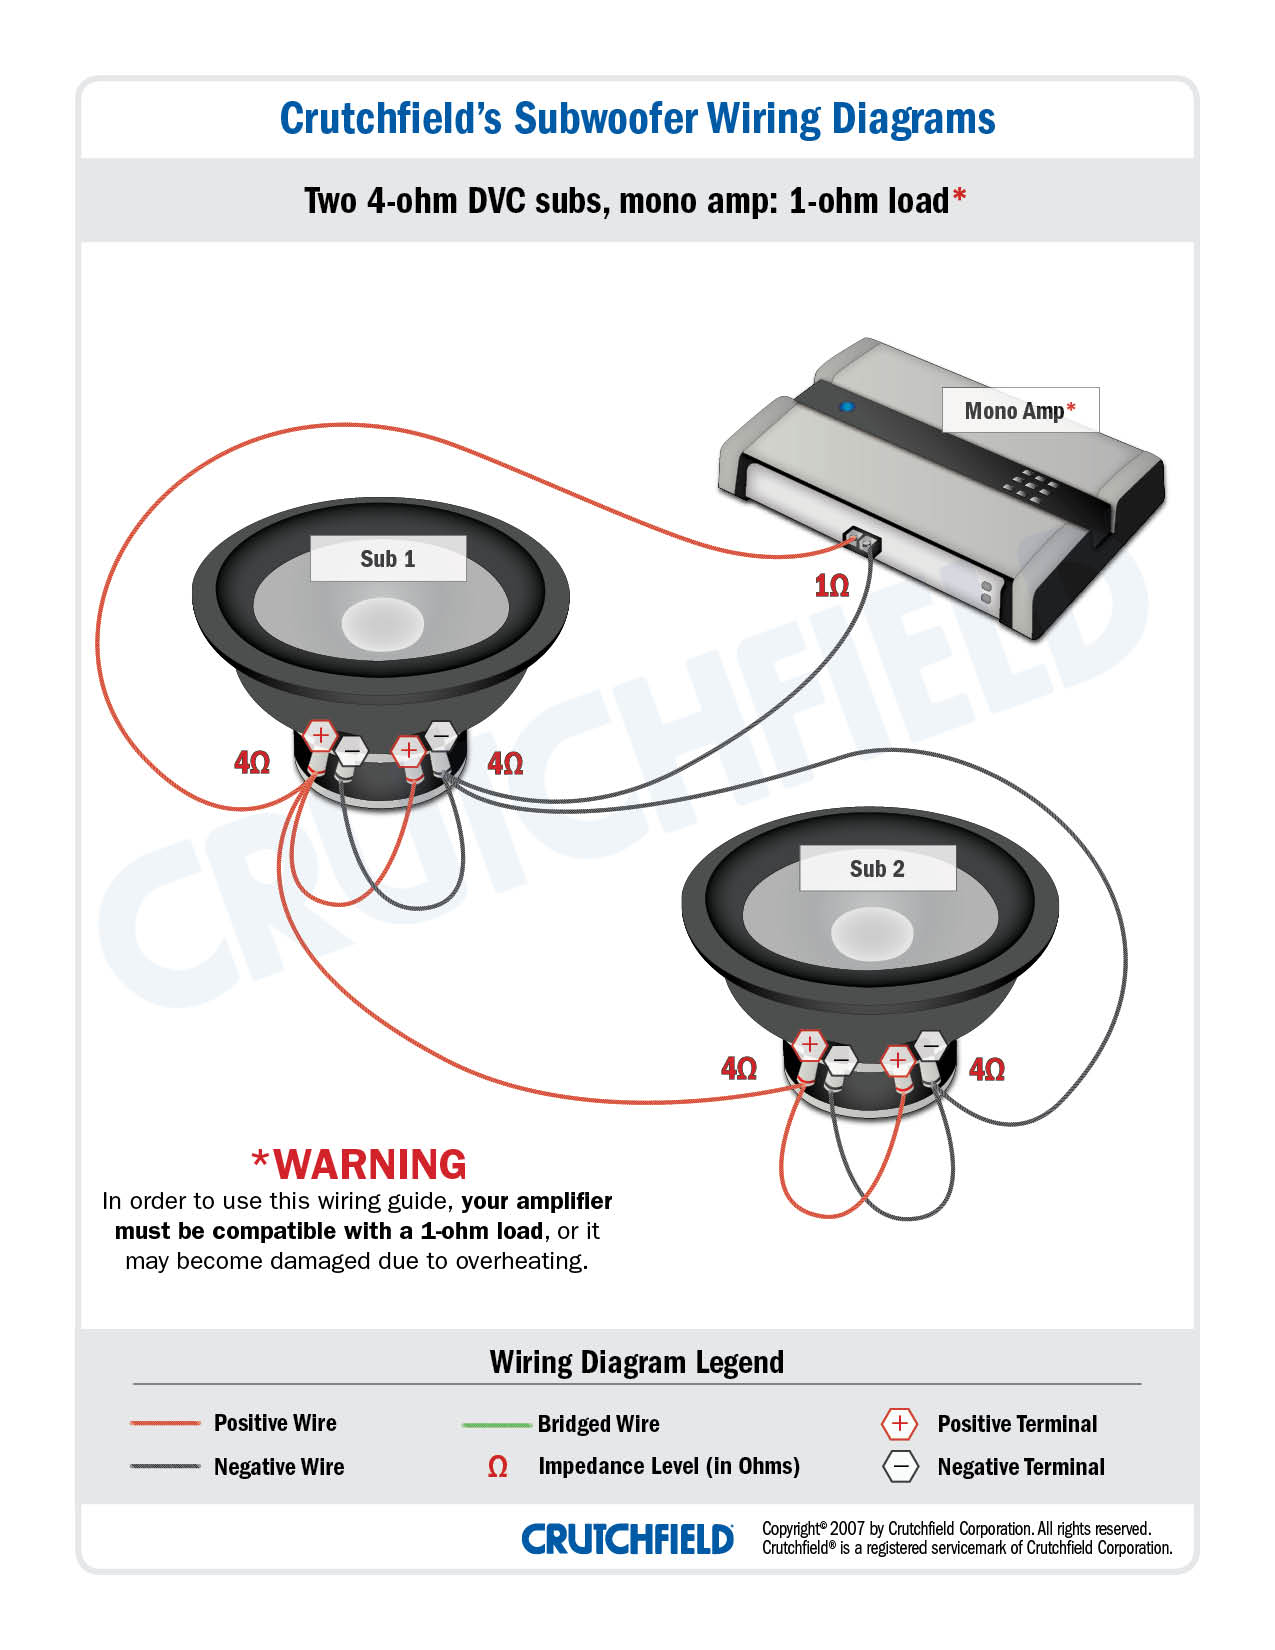 wiring diagram for amp and sub ford ranger wire how should i these subs with this